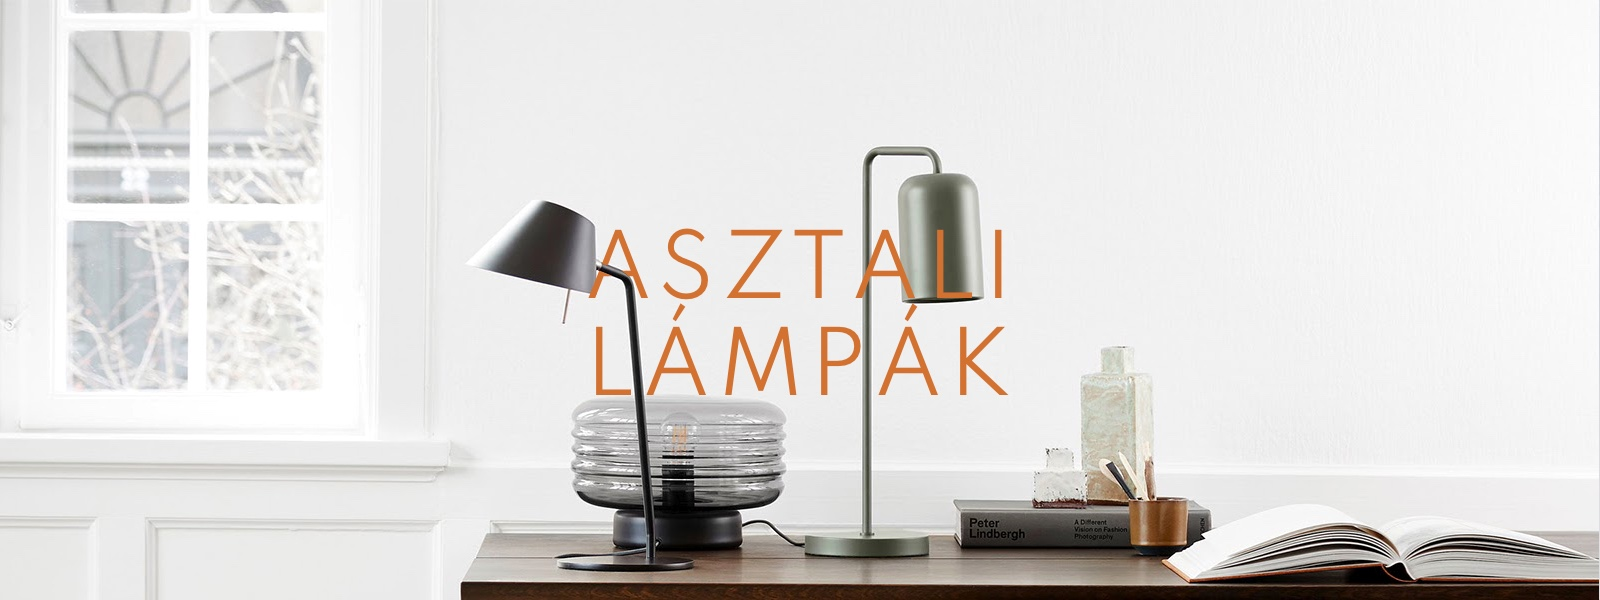 innoshop-asztali-lampak-table-lamps.jpg